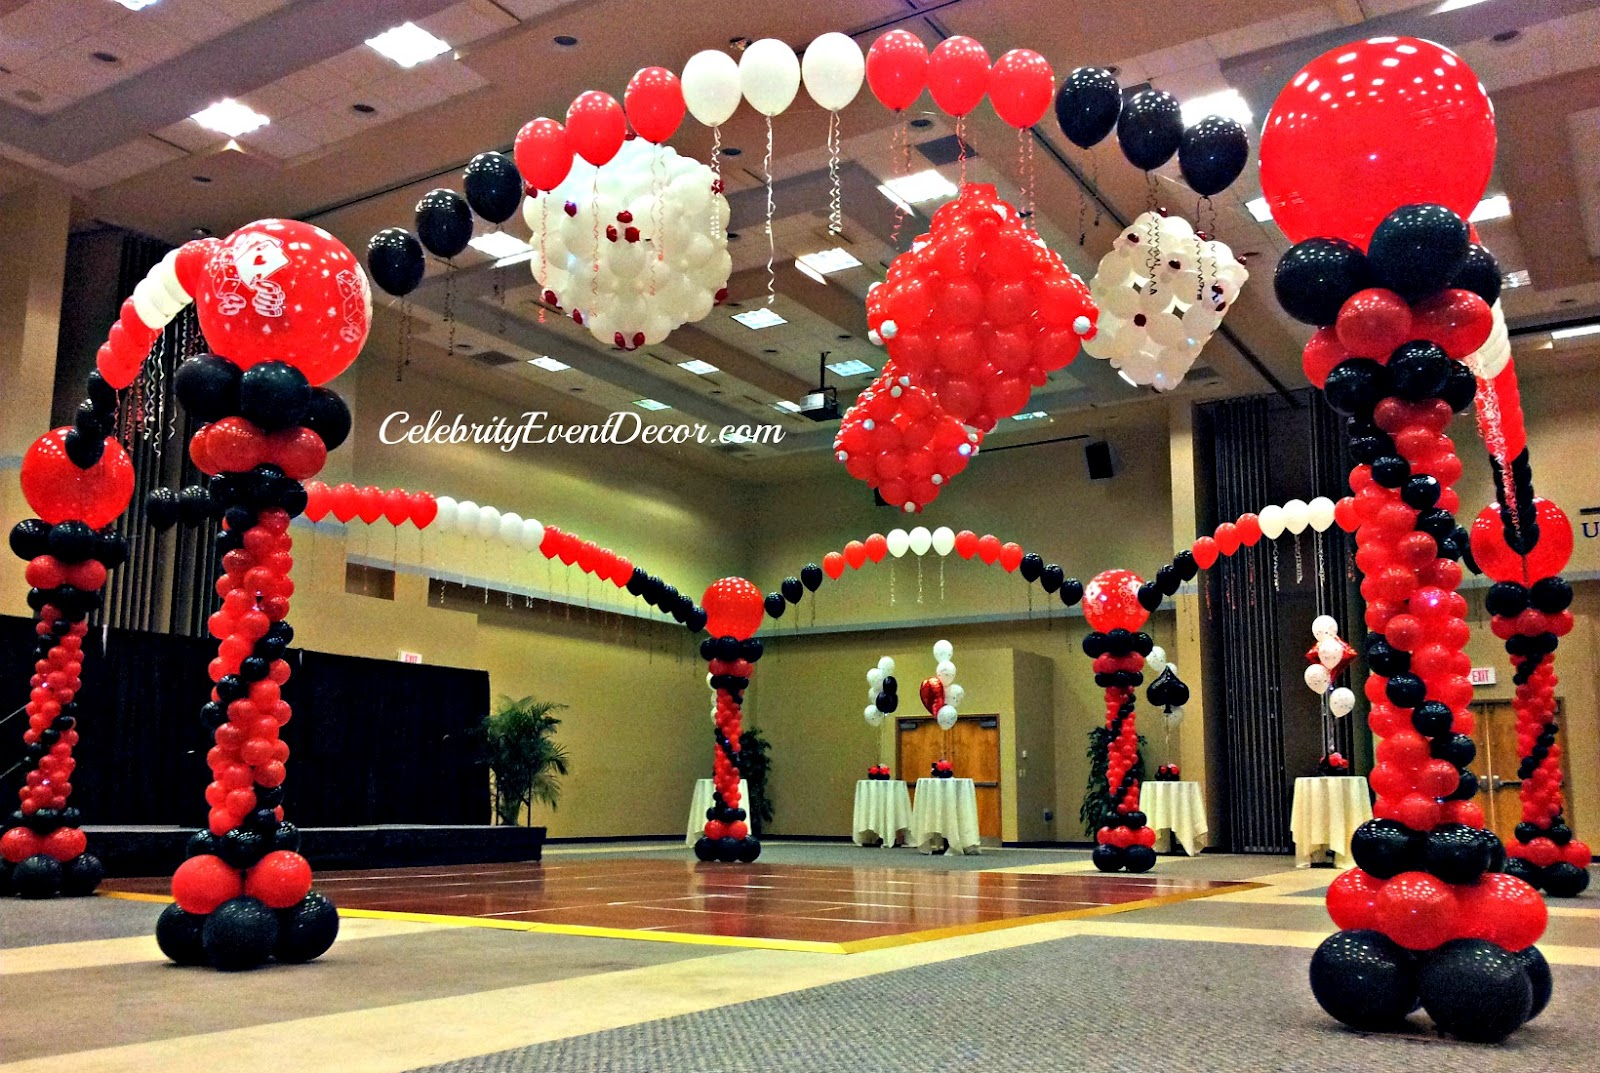 Casino Theme Party Decorations Ideas Part - 38: Celebrity Event Decor, LLC Celebrity Event Decor, LLC